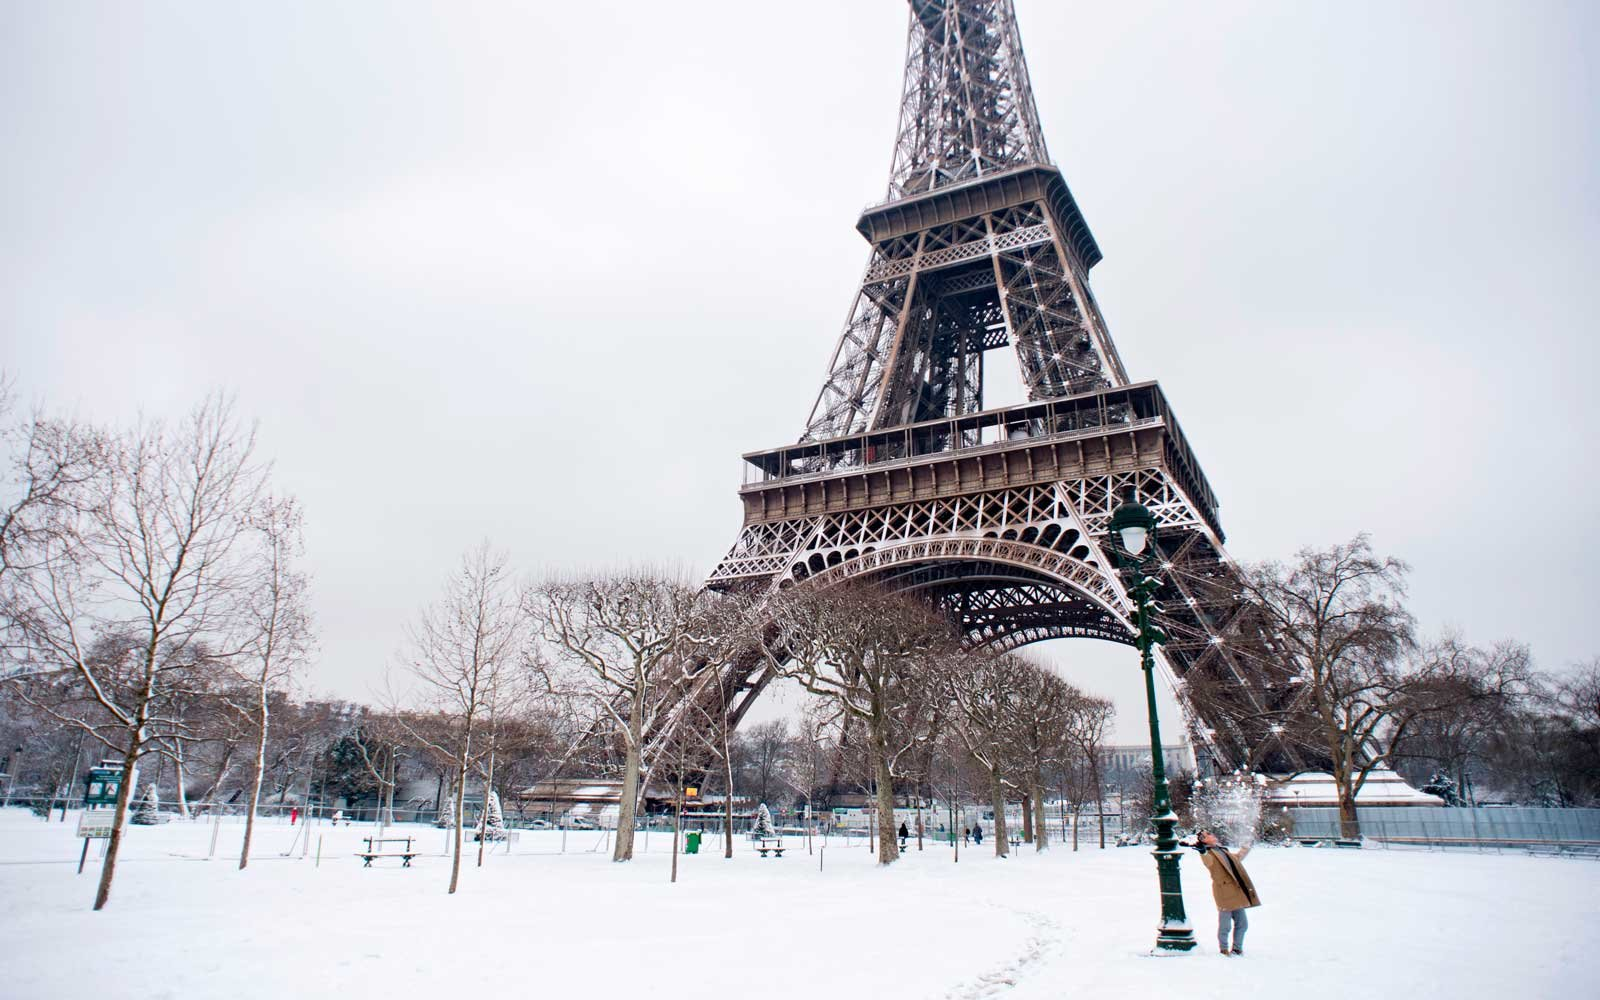 A man plays with snow in the Champ de Mars garden near the Eiffel tower on February 7, 2018 following heavy snowfall in Paris.